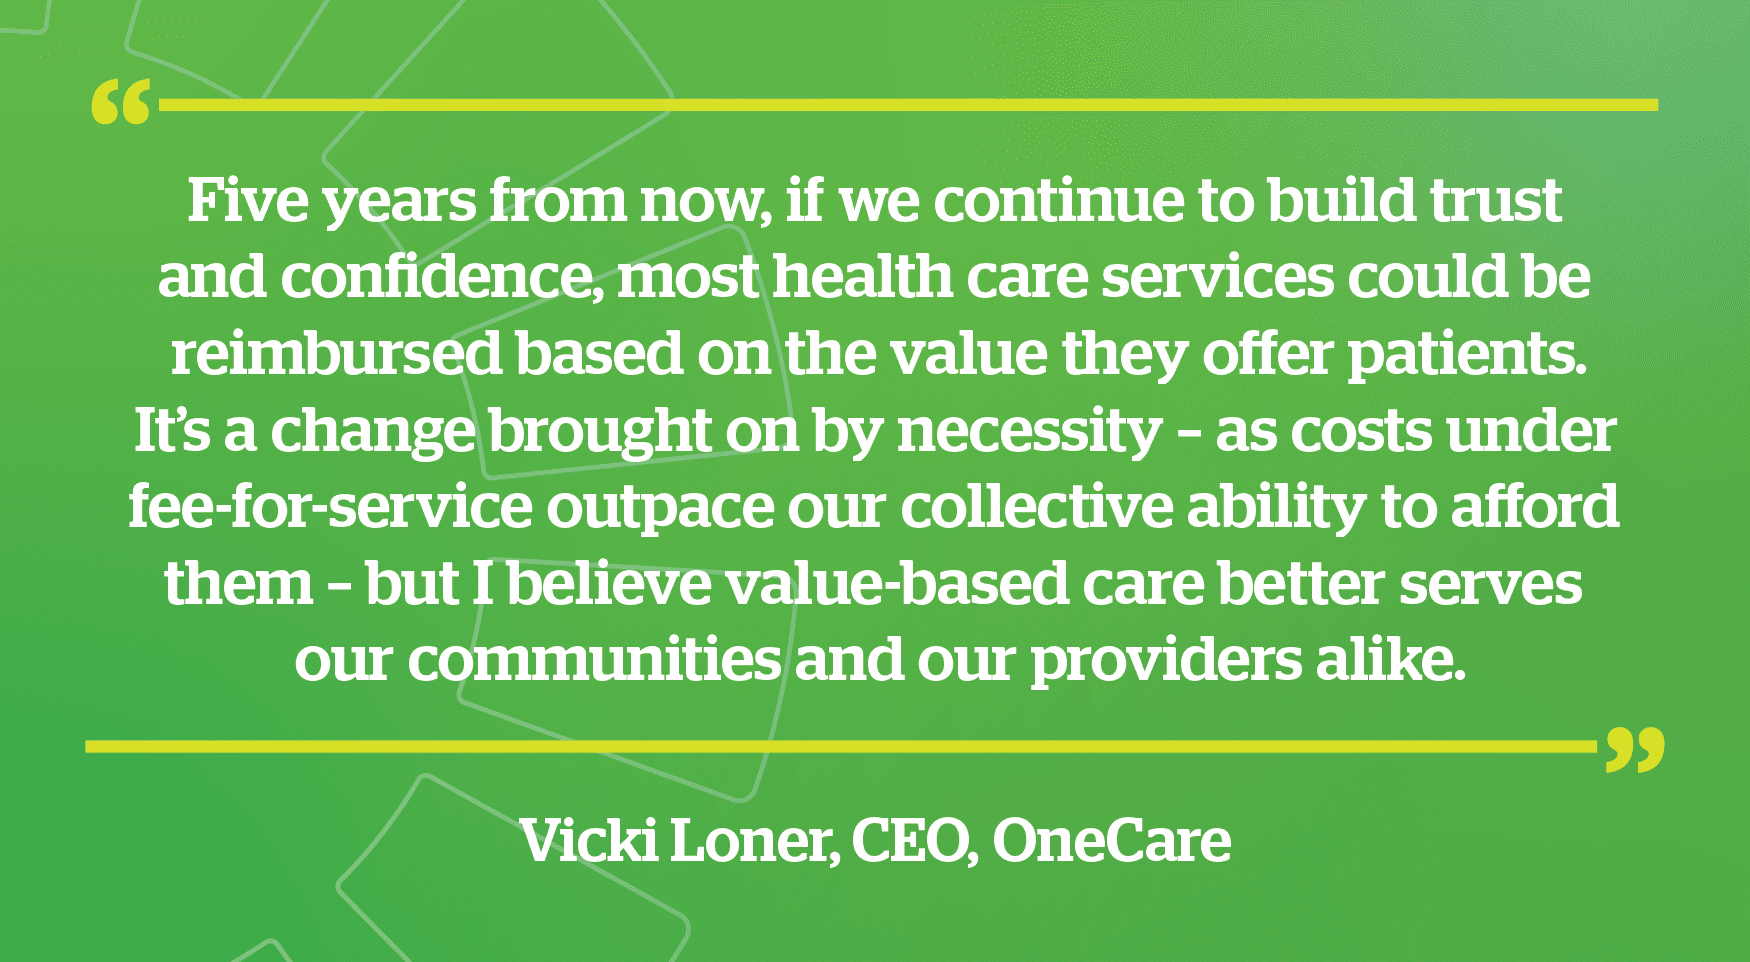 Vicki Loner CEO quote - Five years from now, if we continue to build trust and confidence, most health care services could be reimbursed based on the value they offer patients. It's a change brought on by necessity – as costs under fee-for-service outpace our collective ability to afford them – but I believe value-based care better serves our communities and our providers alike.